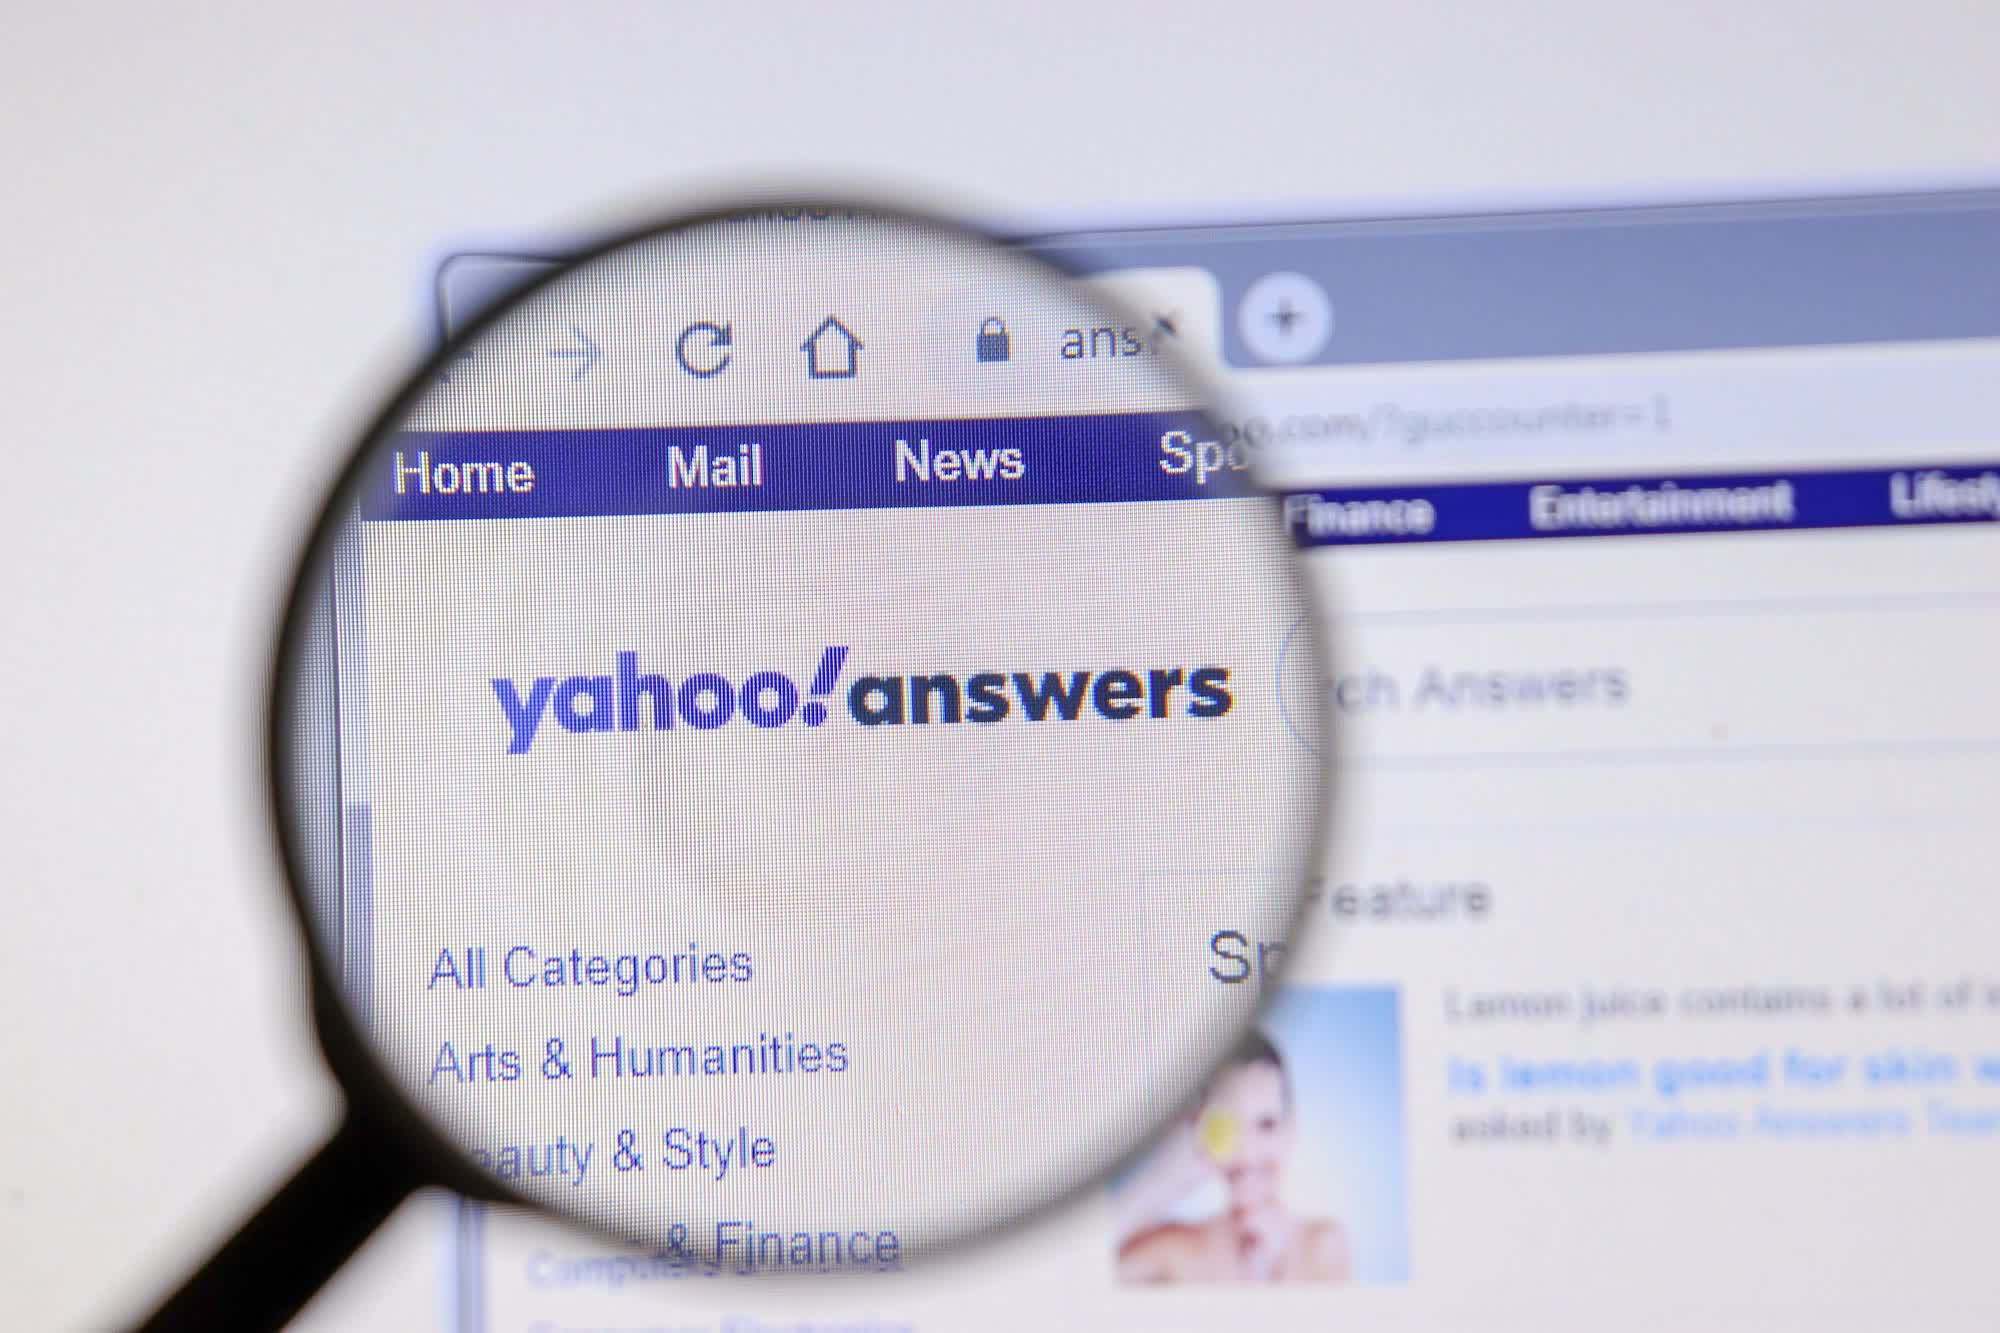 Yahoo Answers is shutting down after 16 years